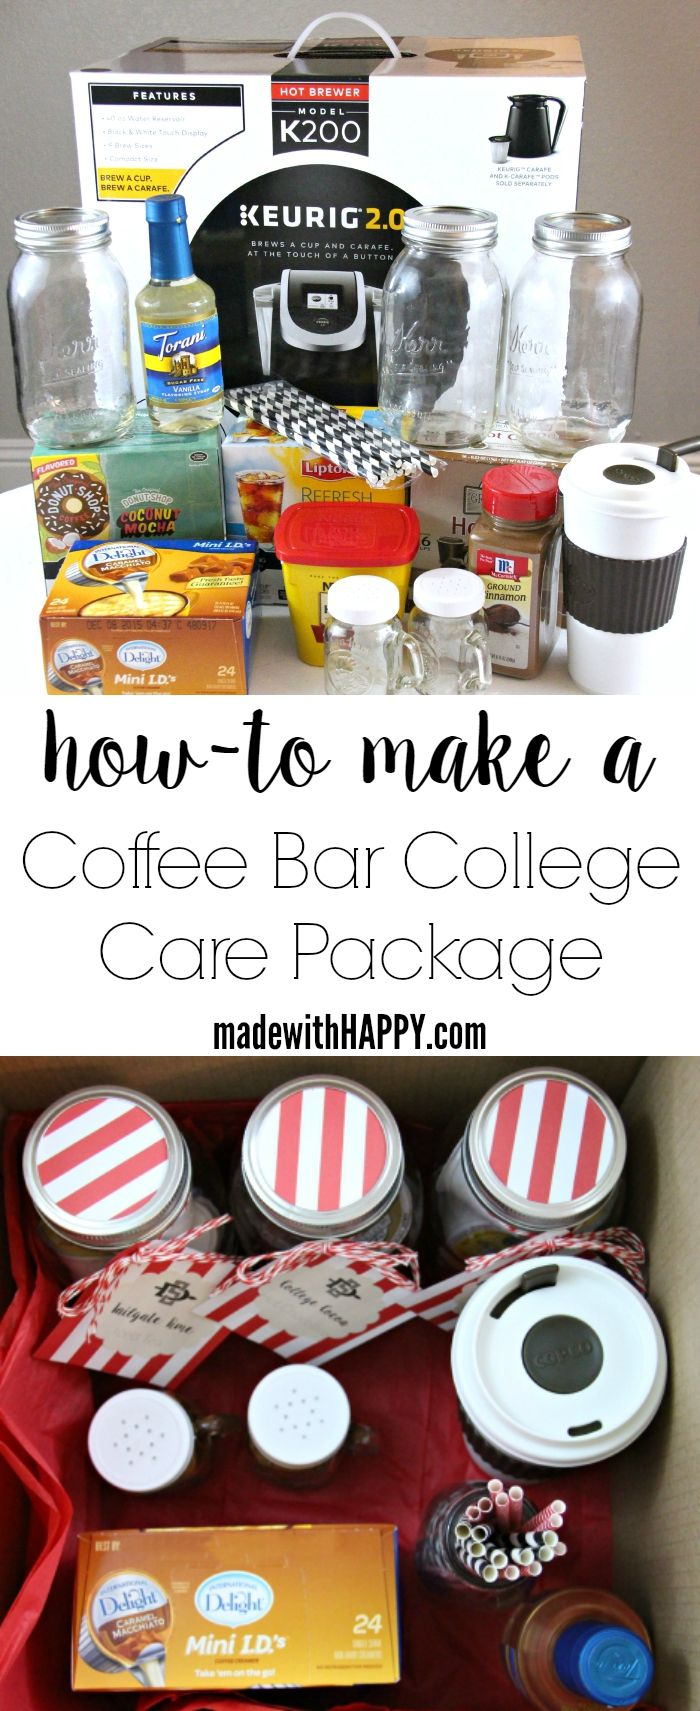 194610Dorm Room Care Package Ideas